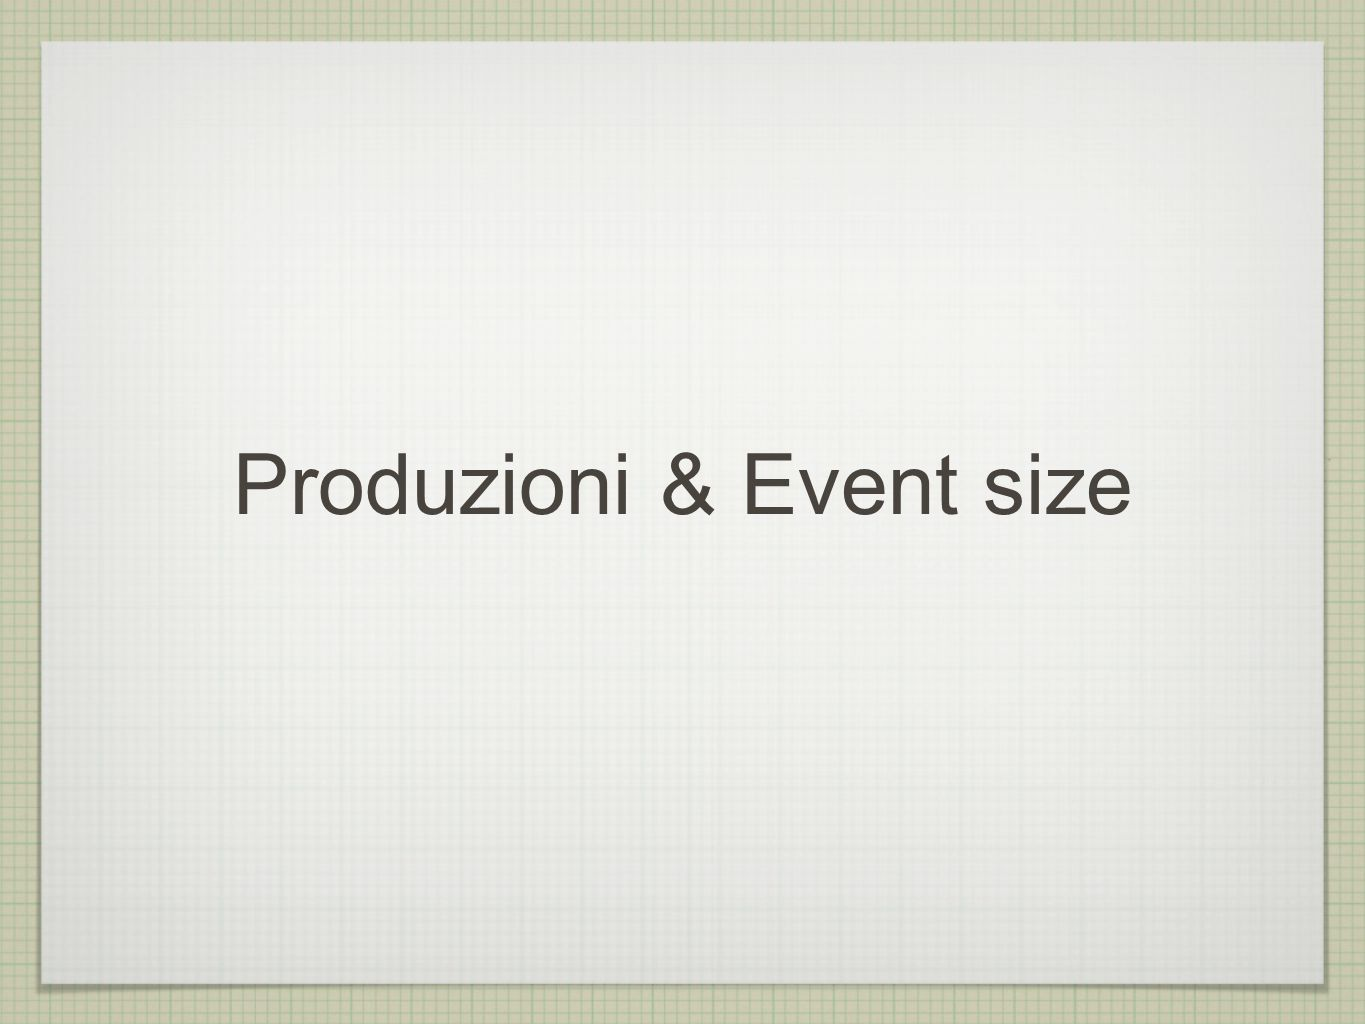 Typical background ProducTion figures Event Size(MB) #Event /1000 Disk space(TB) Rad.